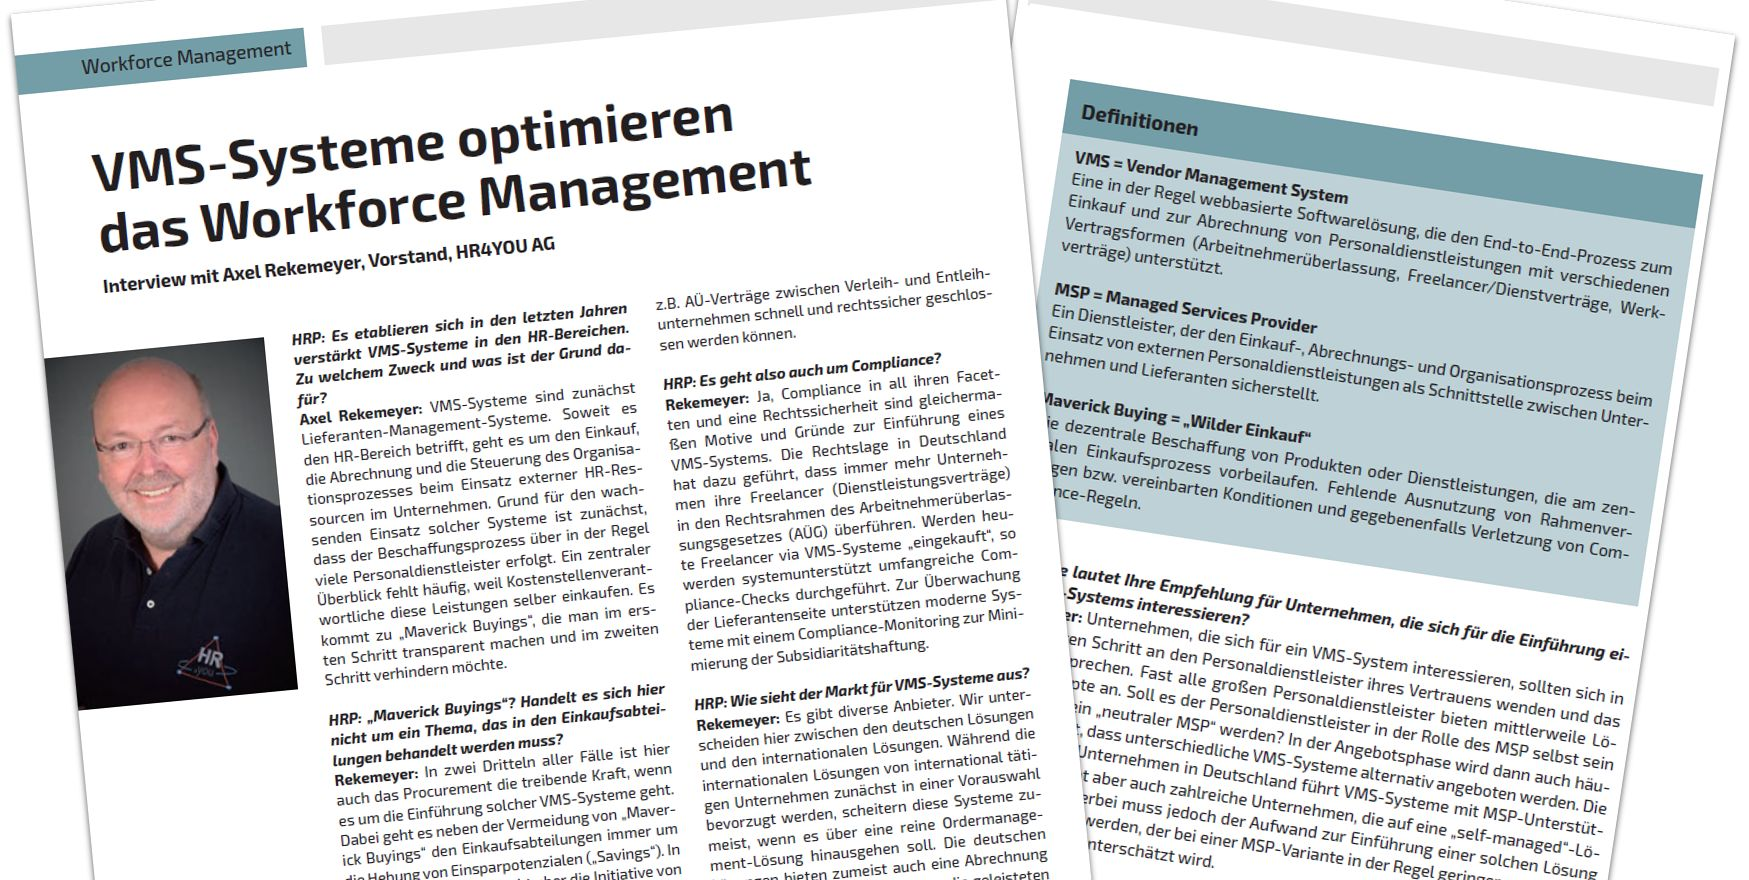 VMS Systeme optimieren Workforce Management